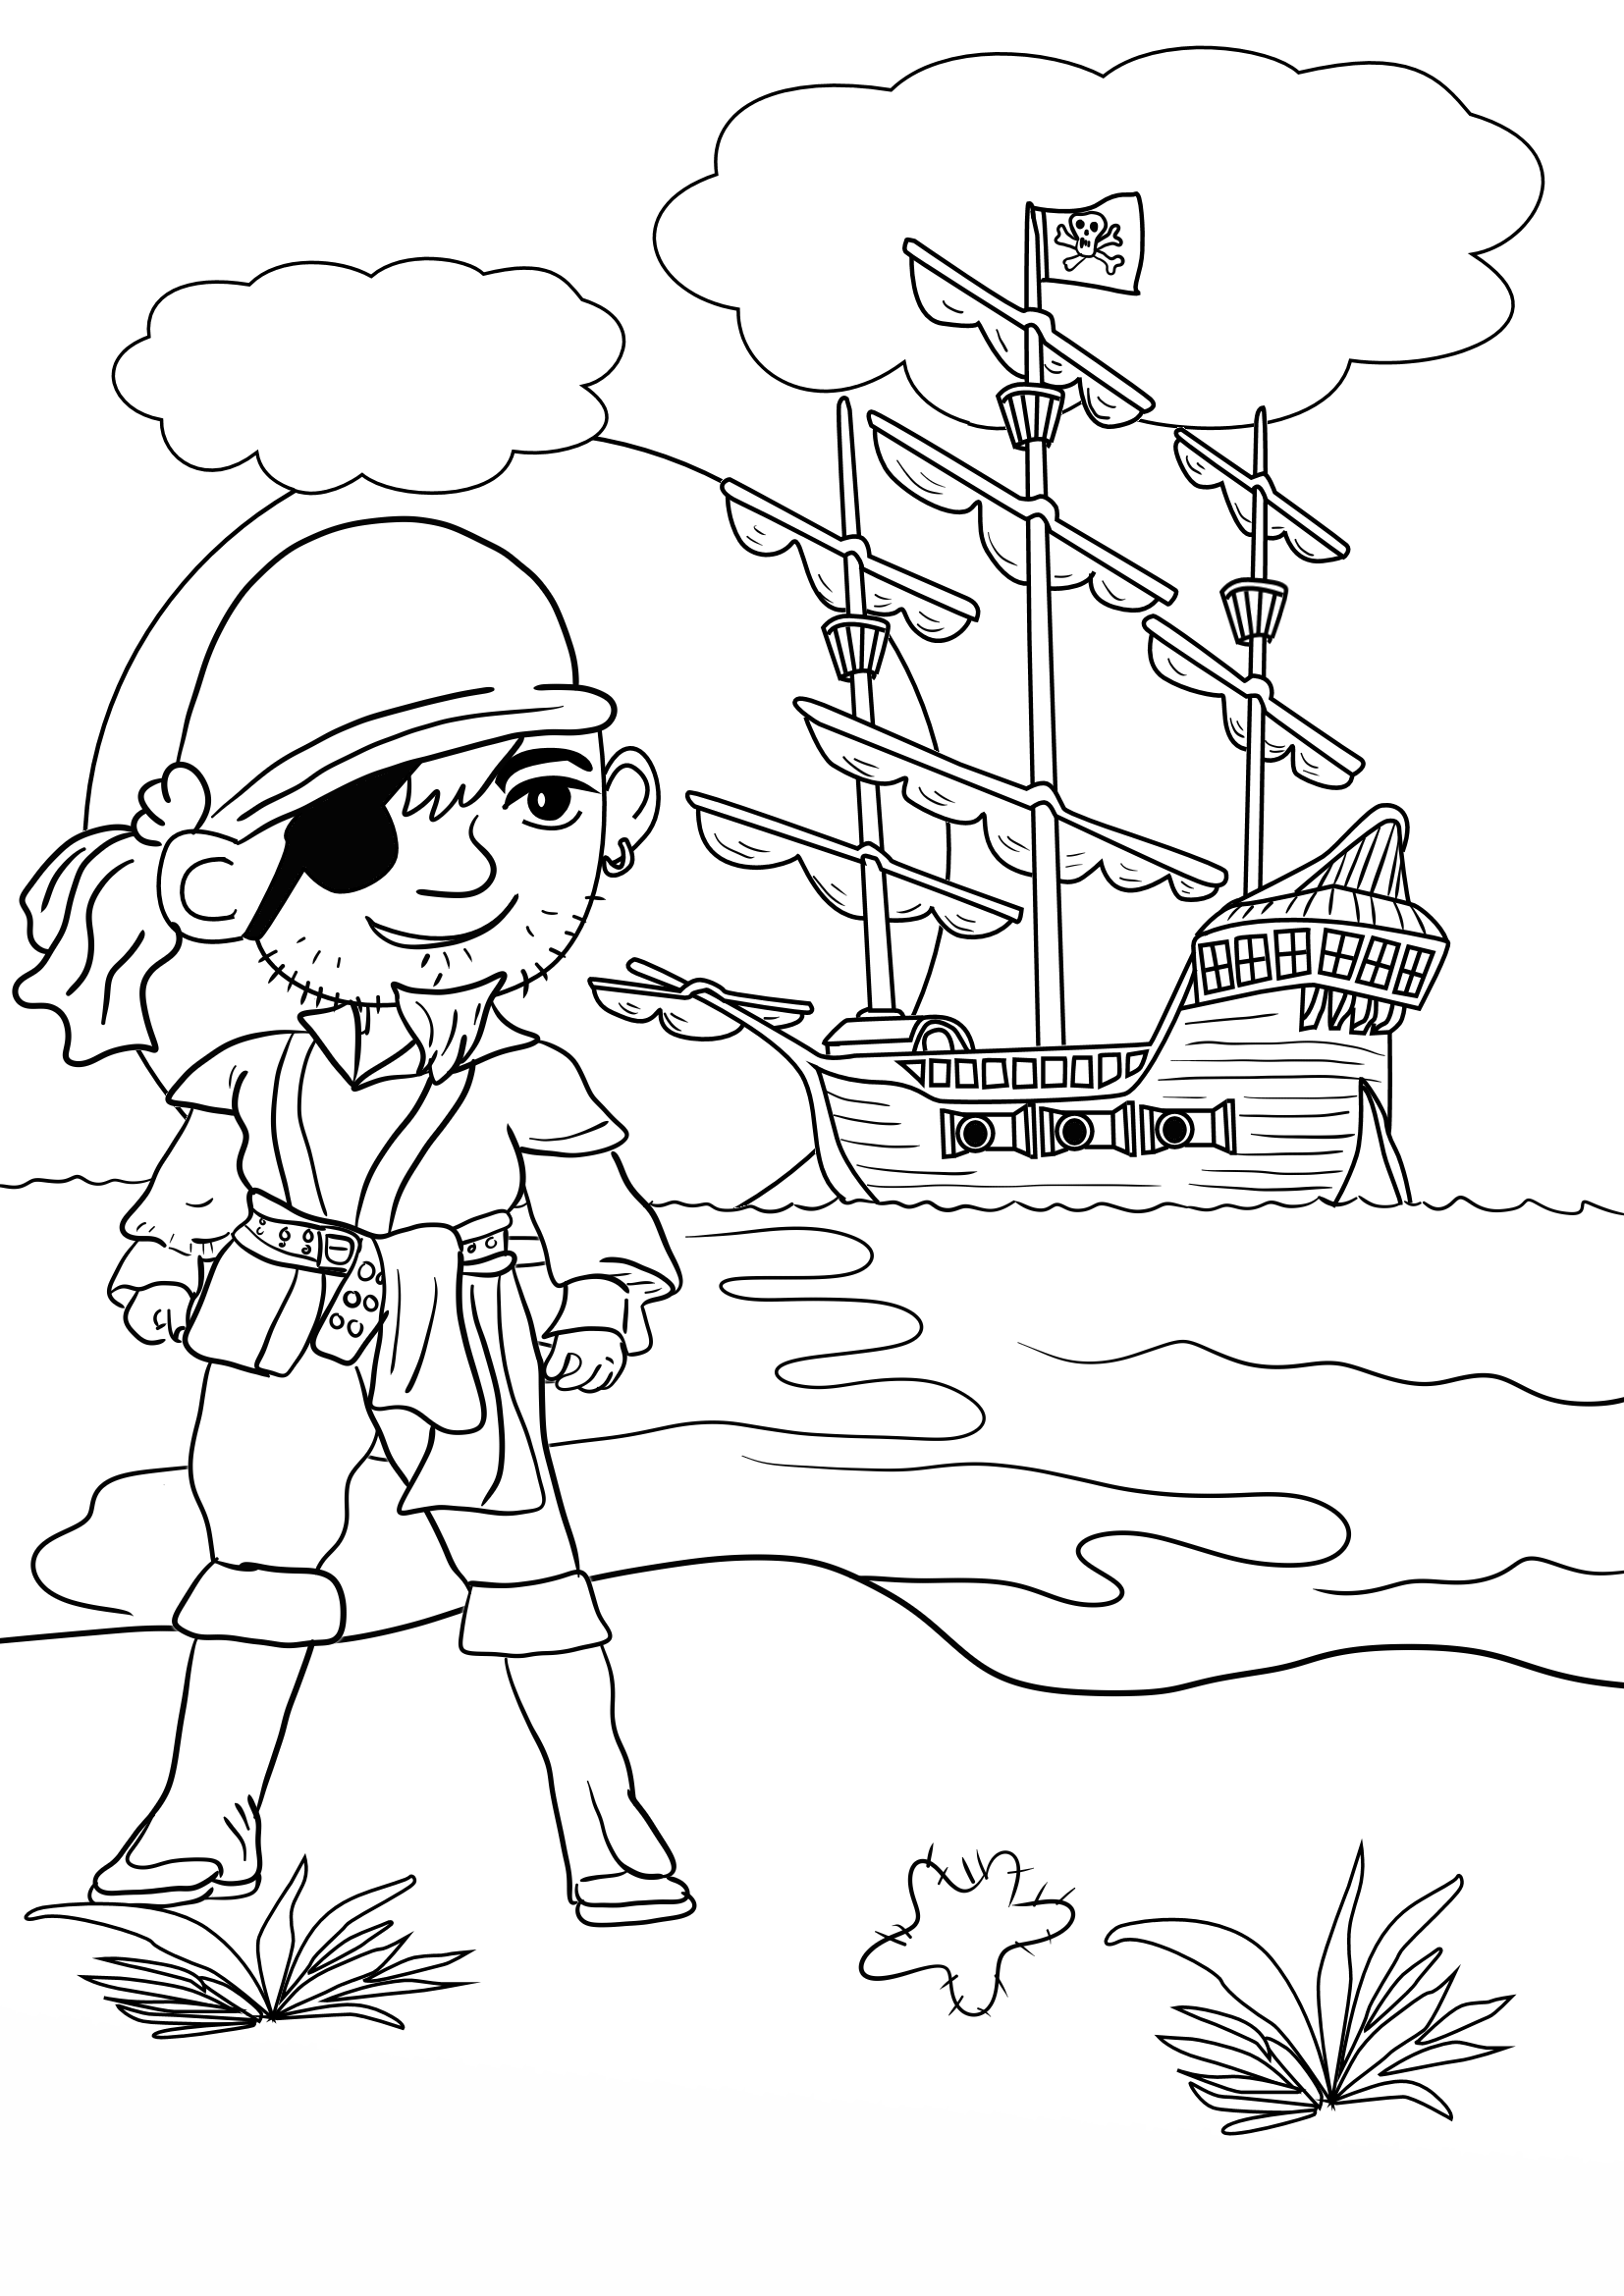 pirate coloring pages for kids free printable pirate coloring pages for kids pages kids coloring pirate for